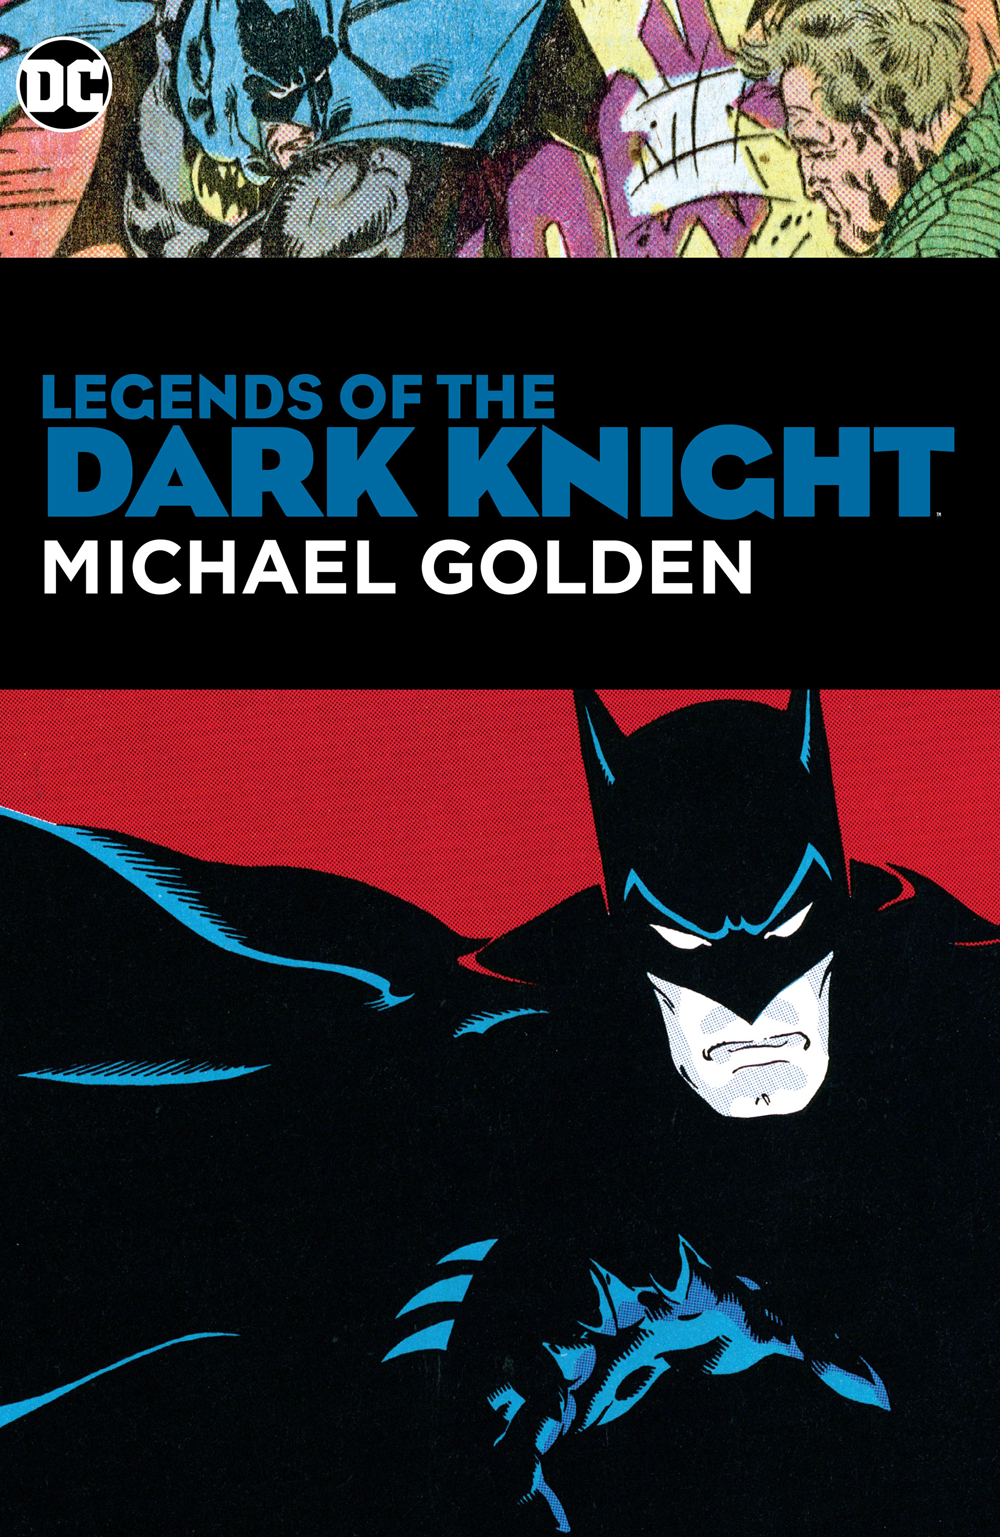 Legends of the Dark Knight by Michael Golden HC